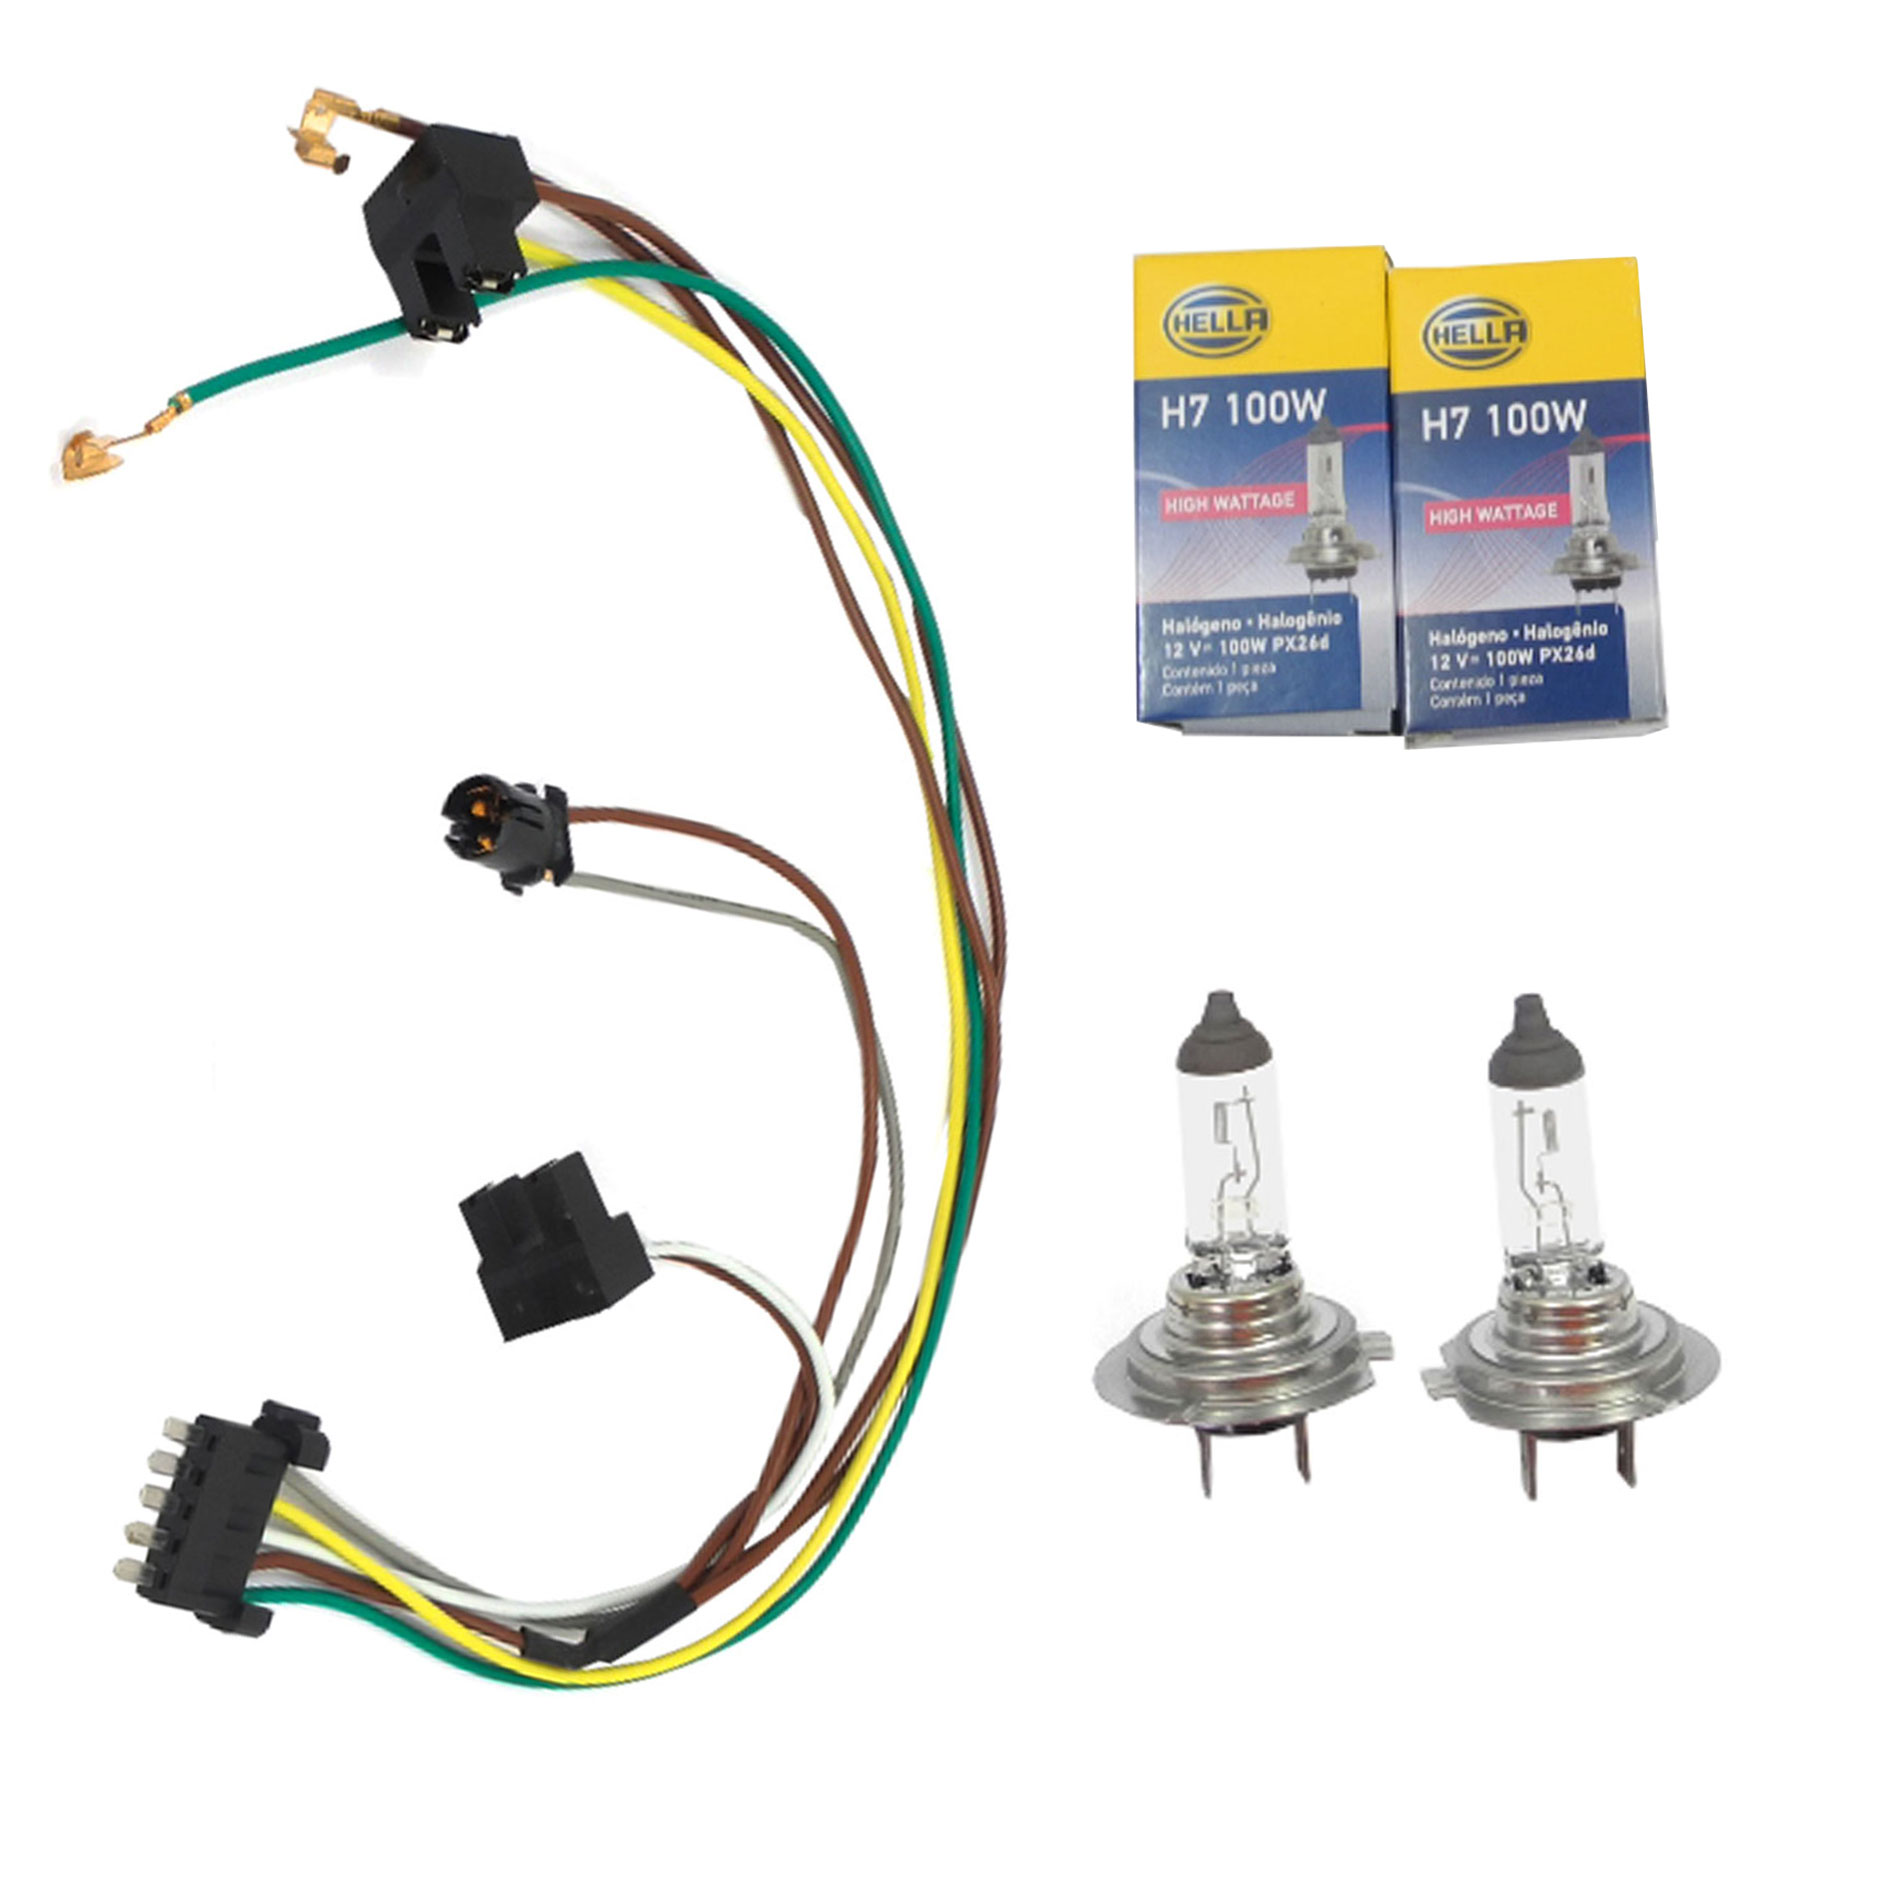 hight resolution of cf advance for 02 05 mercedes benz c230 c320 left or right headlight wiring harness and h7 100w headlight bulb 2002 2003 2004 2005 walmart com